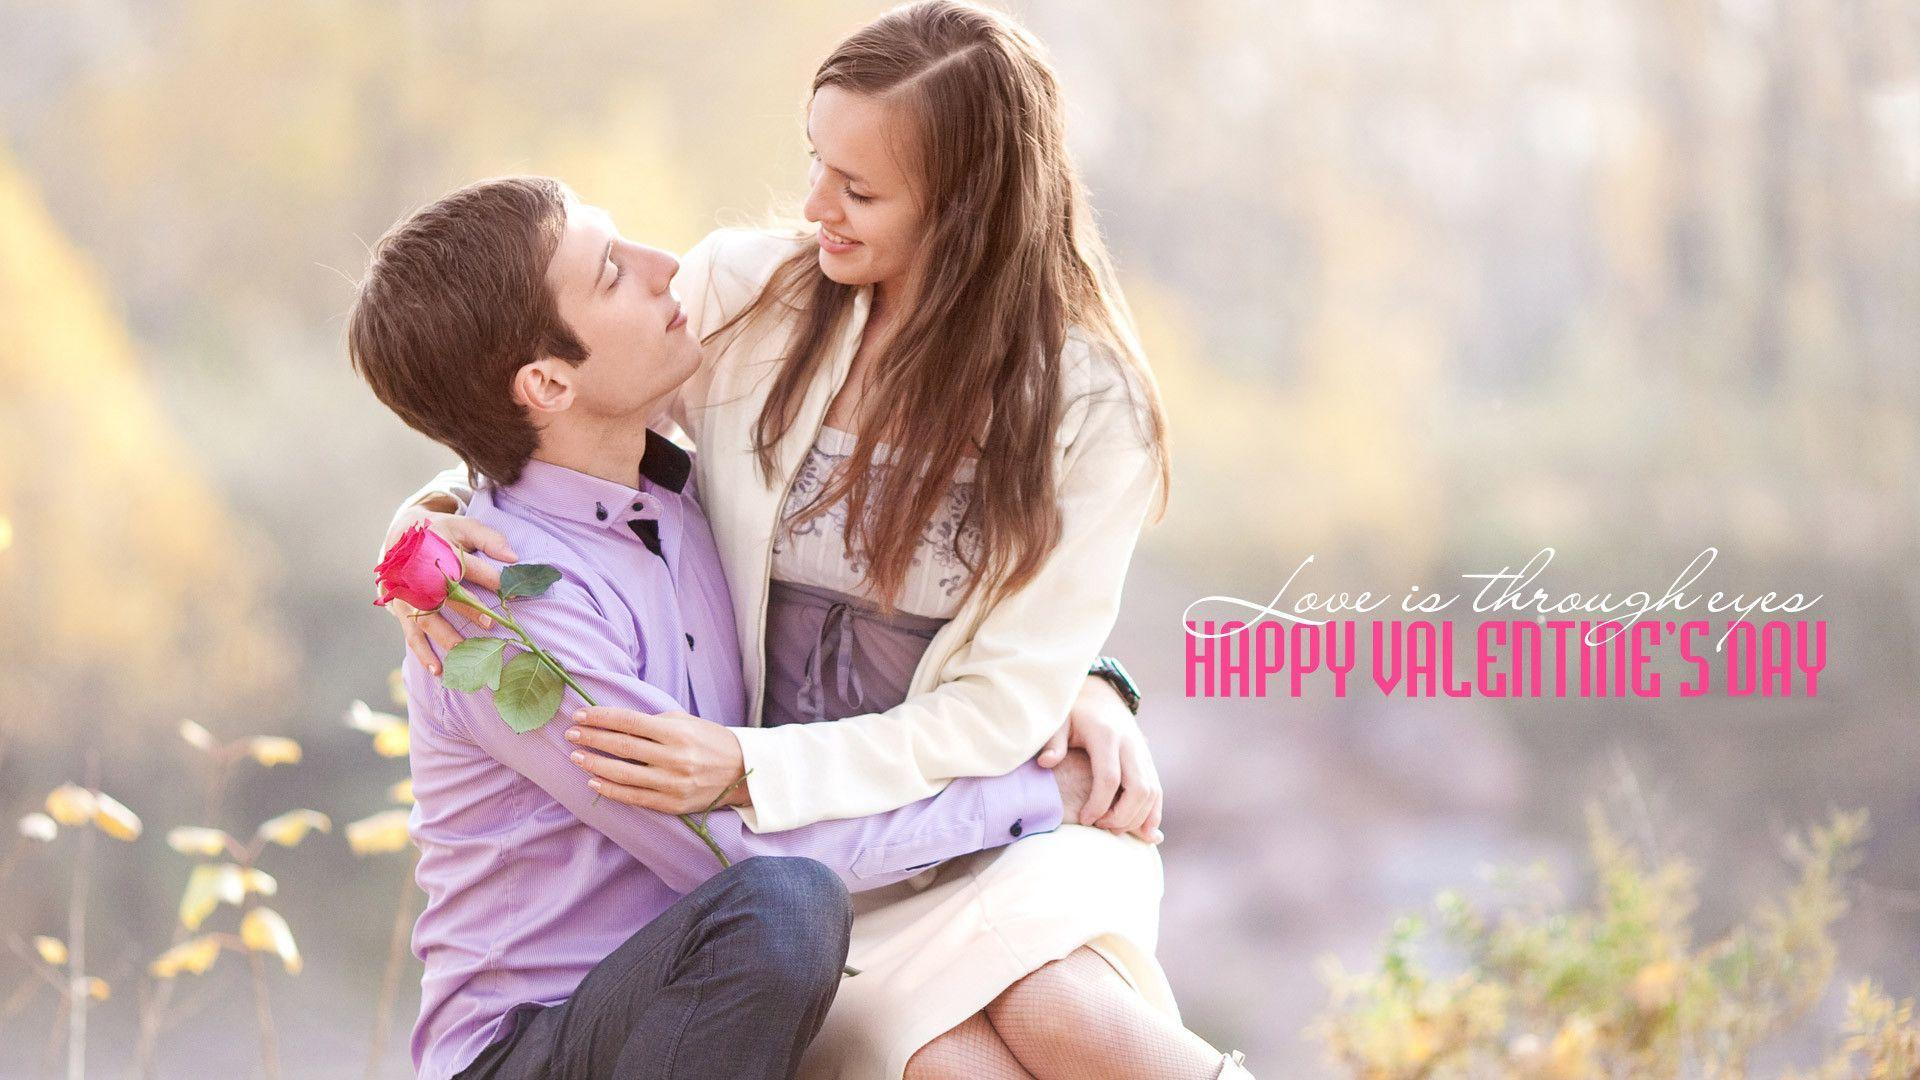 cute Love couple Hd Wallpaper For Mobile : cute couple Backgrounds - Wallpaper cave